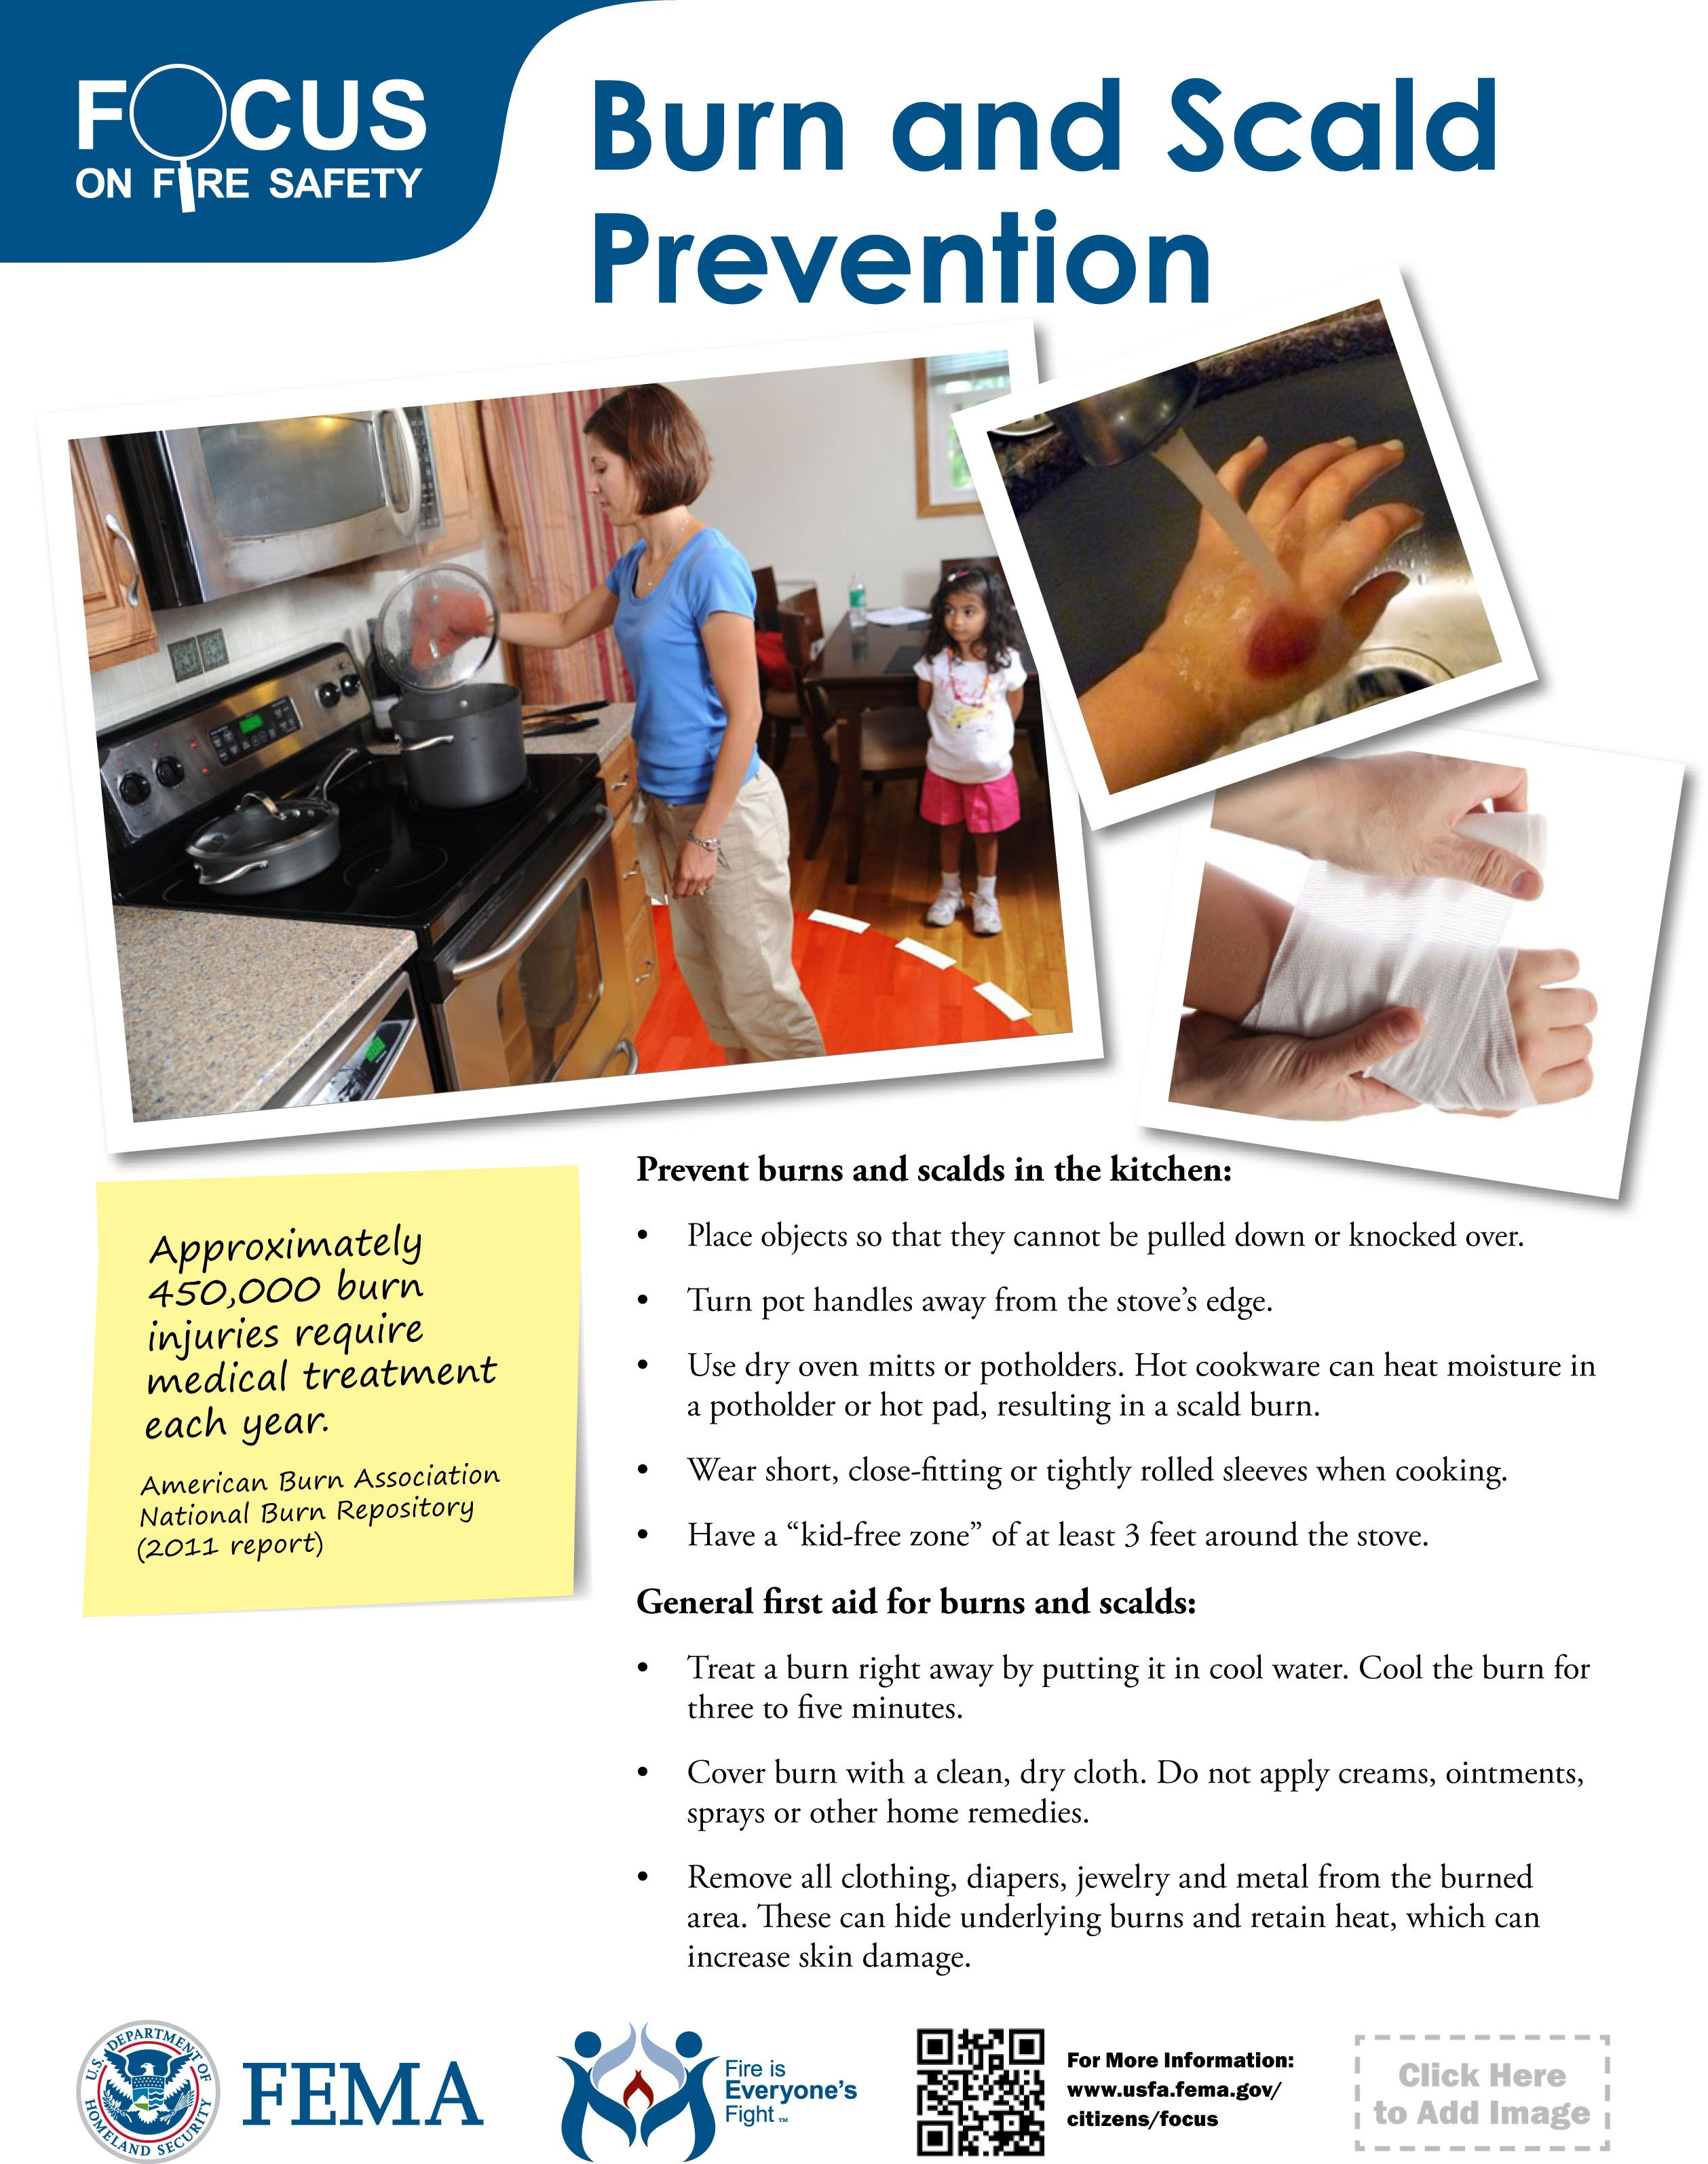 Pin on Fire safety posters